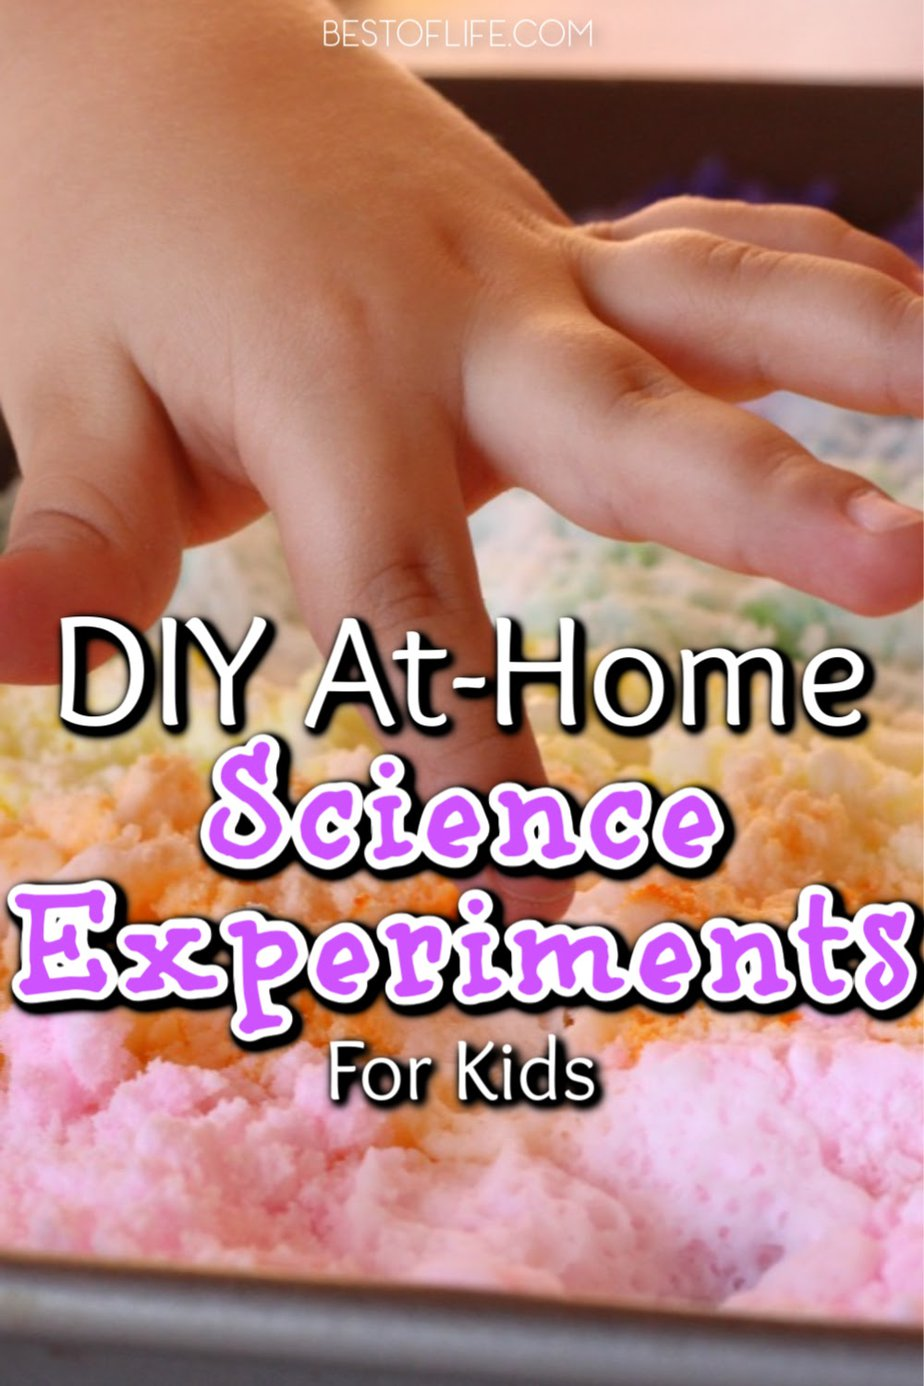 DIY science experiments for kids at home are great ways for parents to keep children engaged and learning and are fun things to do with kids. Activities for Kids at Home | DIY Activities | At Home Science Activities | DIY Homeschooling Ideas | Parenting Ideas | Safe Science Projects for Kids #science #parenting